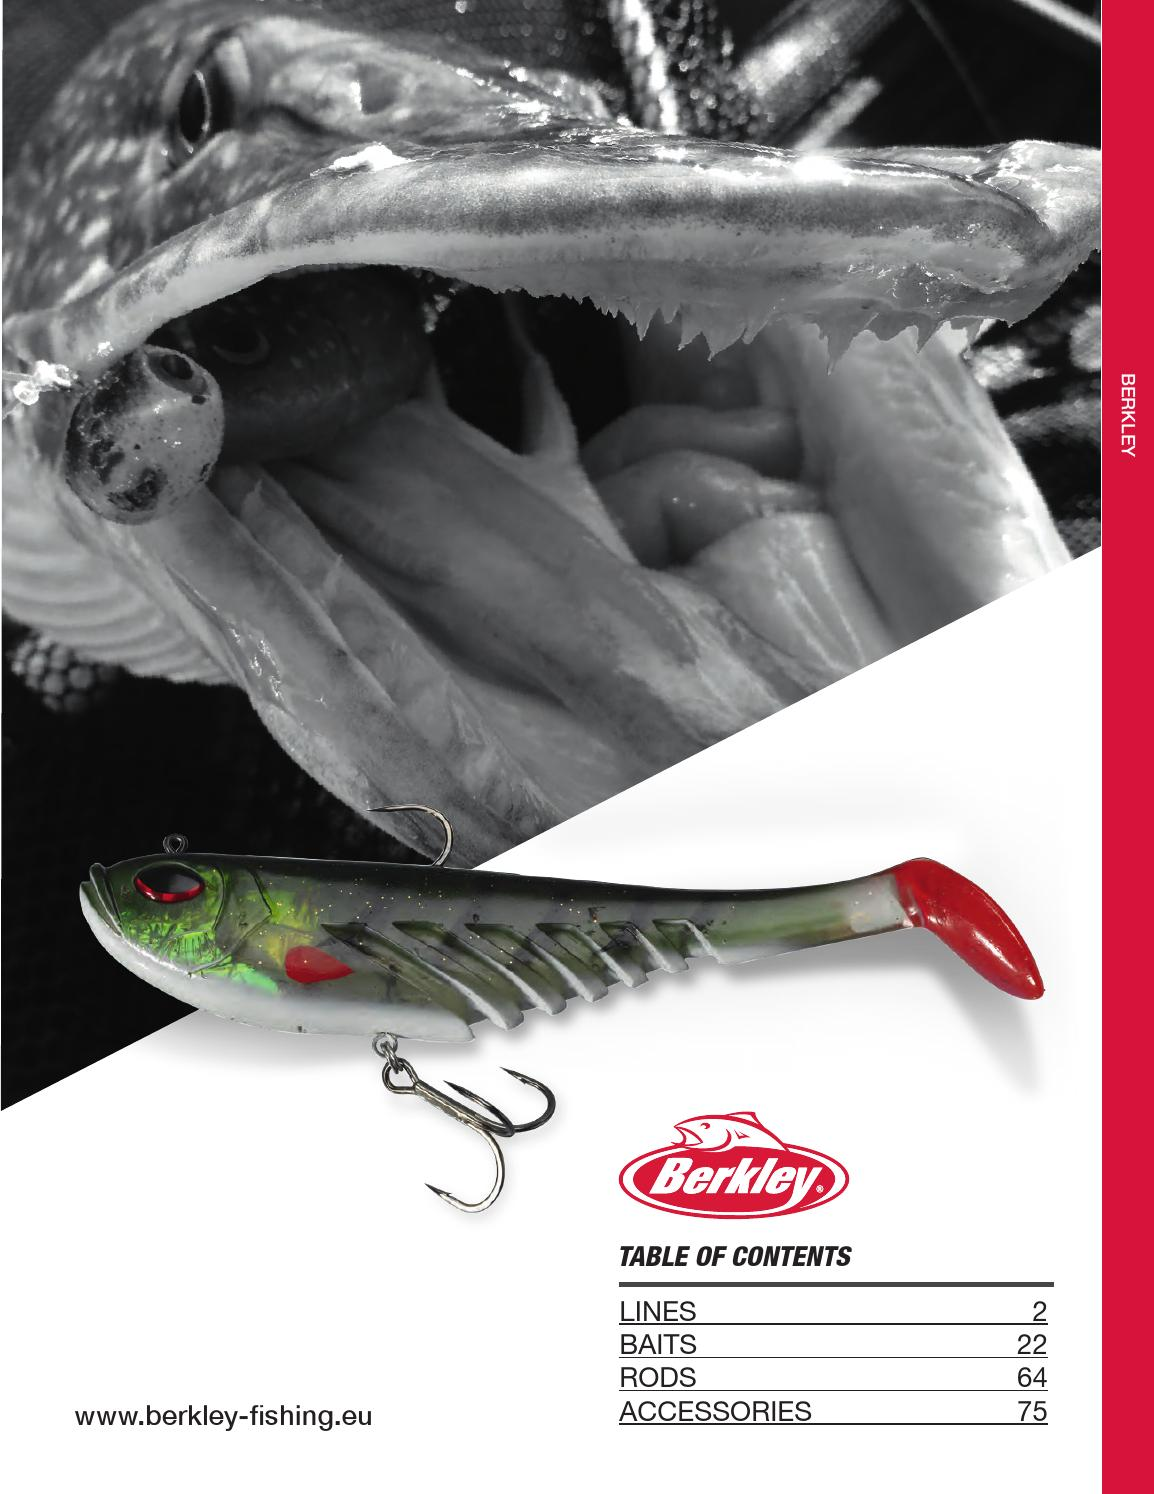 Berkley 2018 Catalog By Maciek Respondek Issuu Lure Minnow 85 Cm 68gr Crank Bait Treble Hook Crankbait 2016